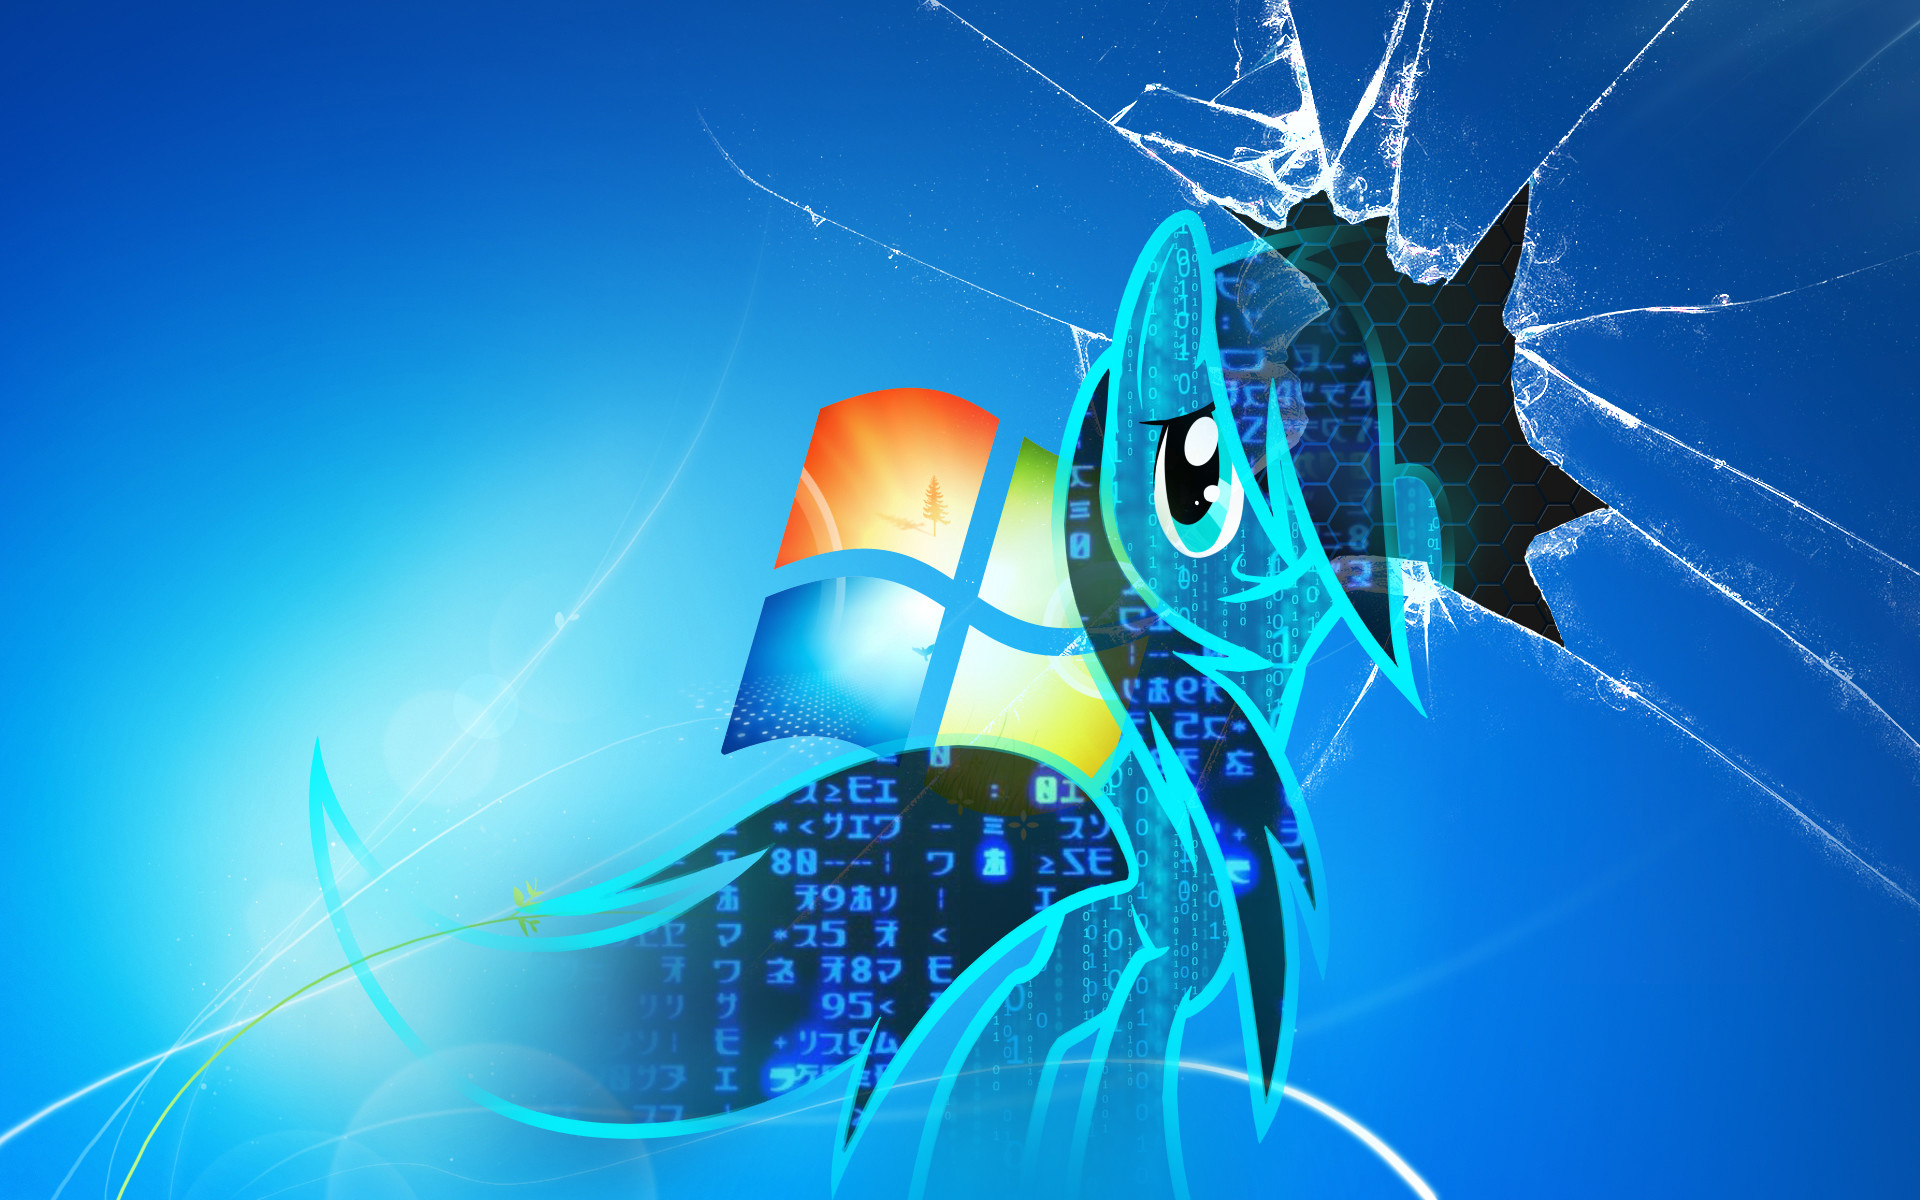 1920x1200 100% Quality HD-Broken Windows 10 | Impressive Broken Windows 10 Pics